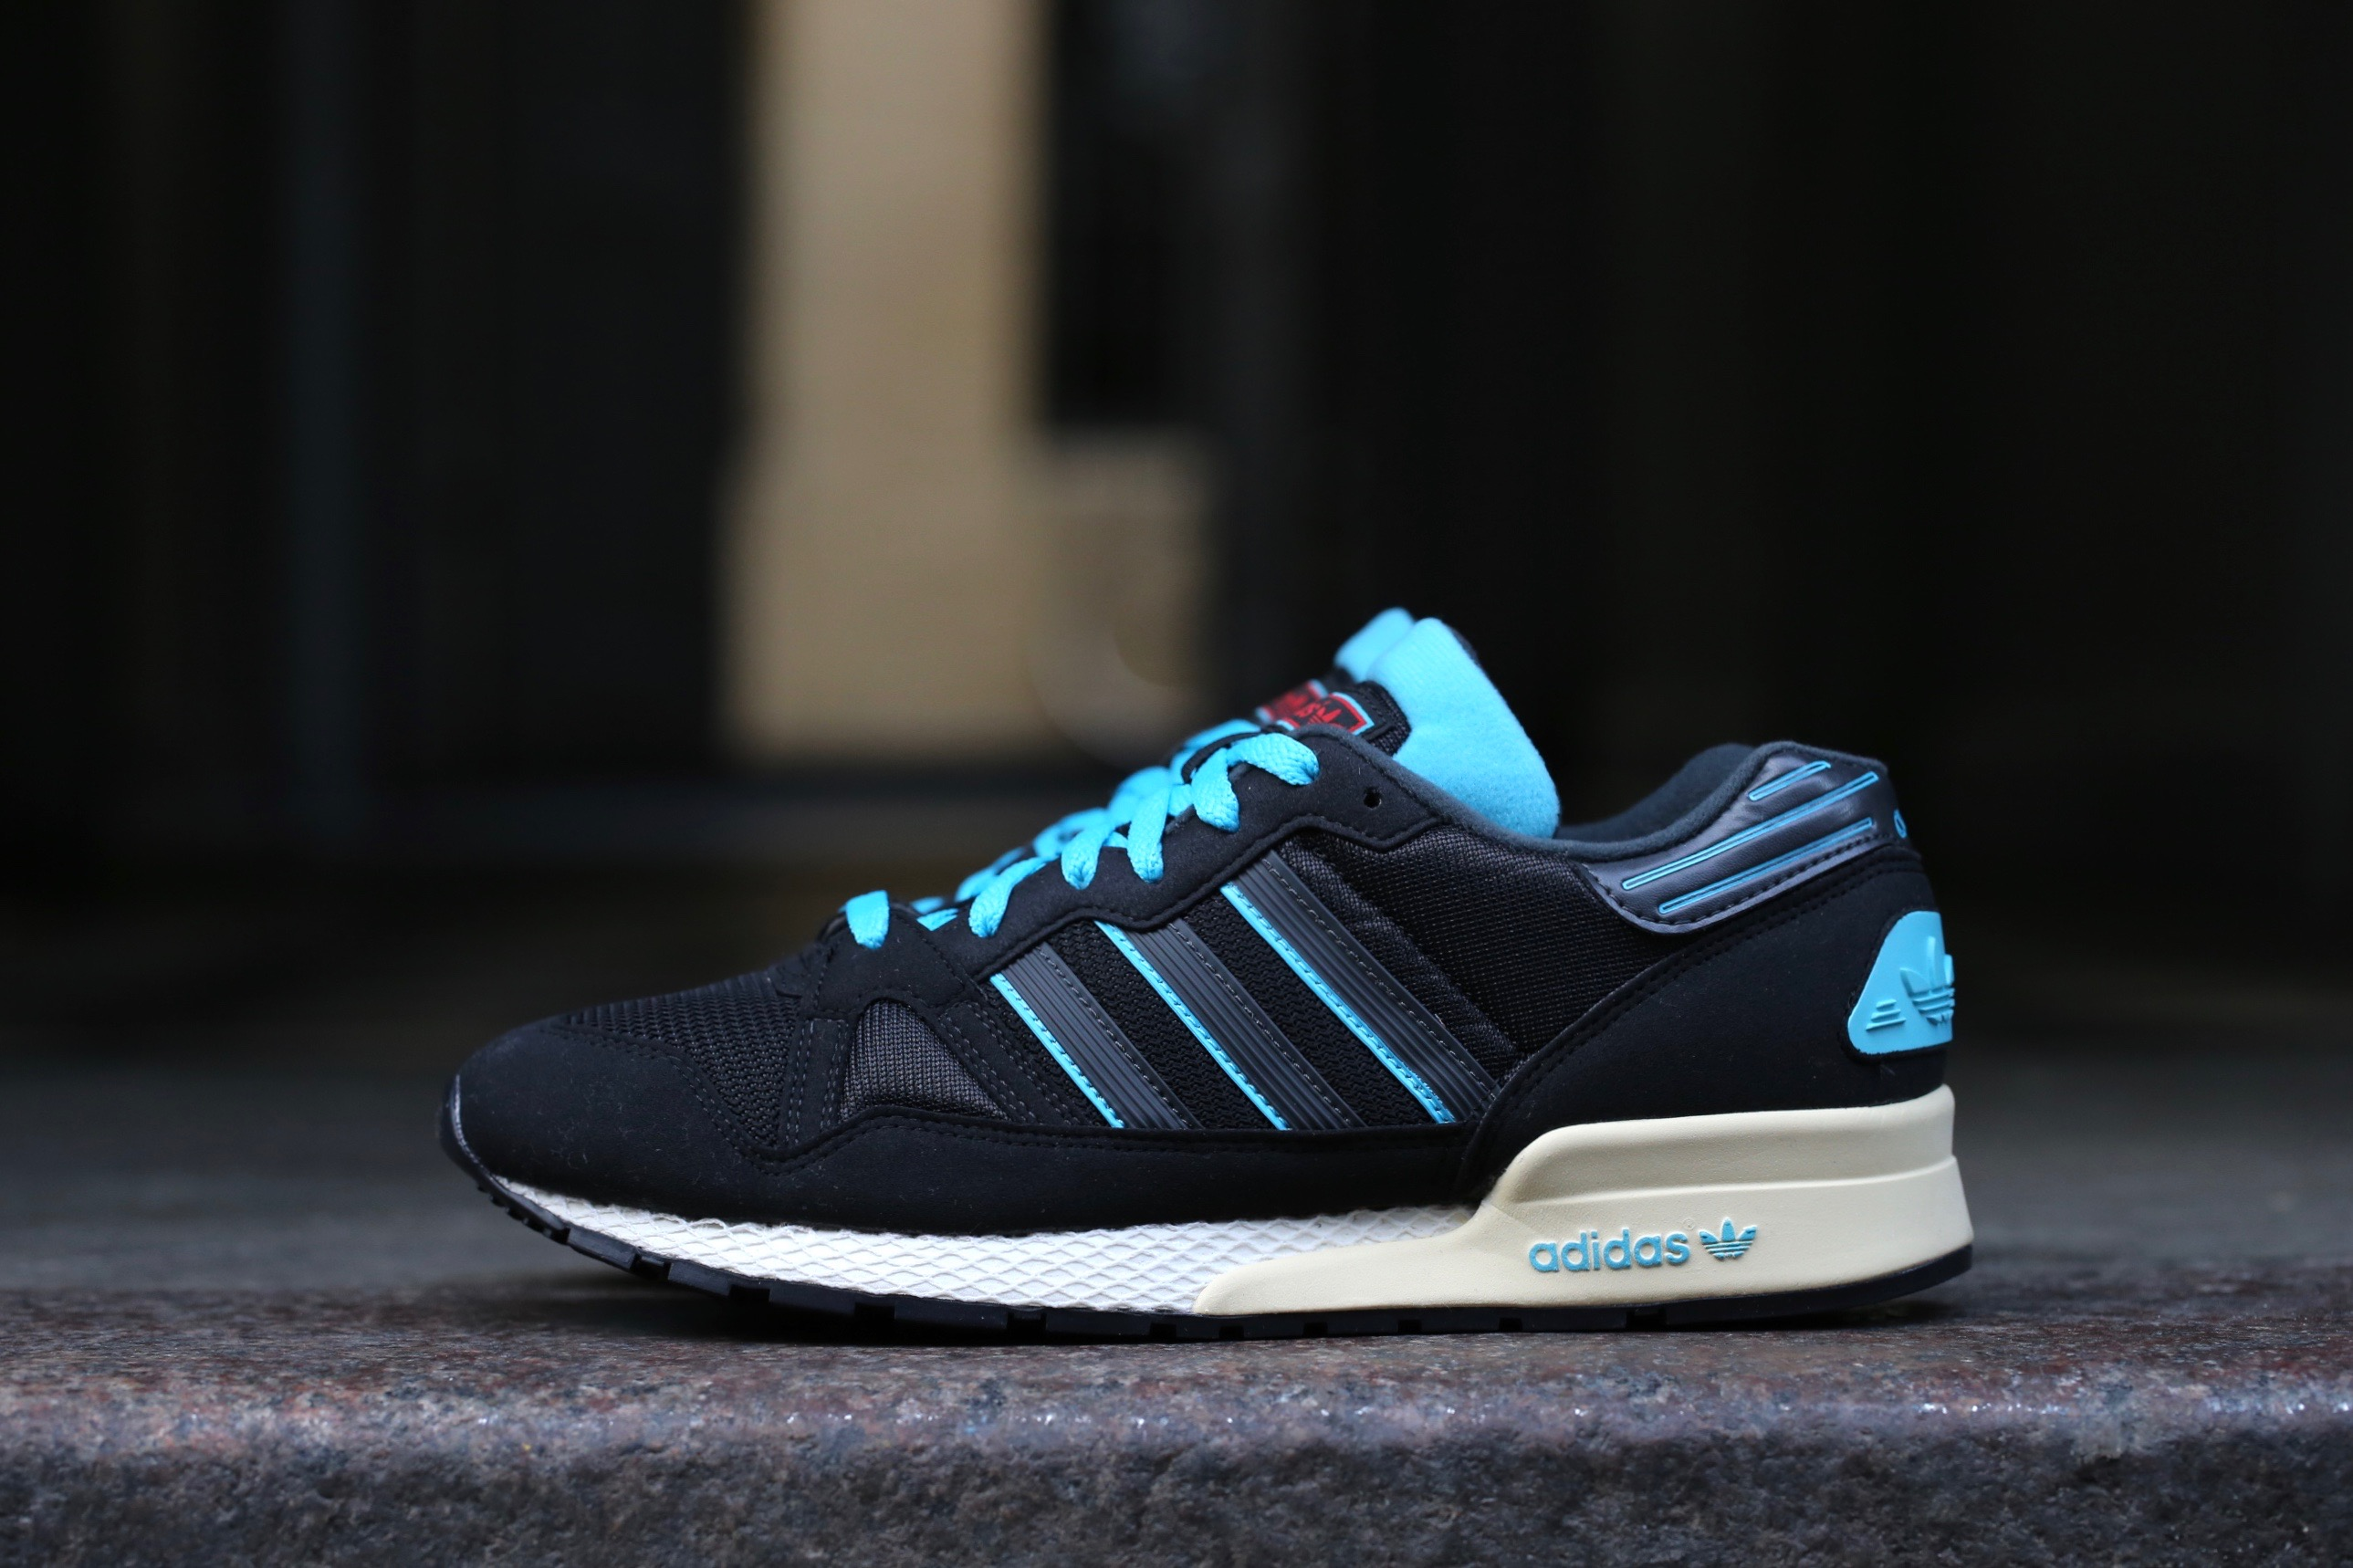 Adidas originals zx 710 black carbon samba blue stasp for Adidas originals unicenter